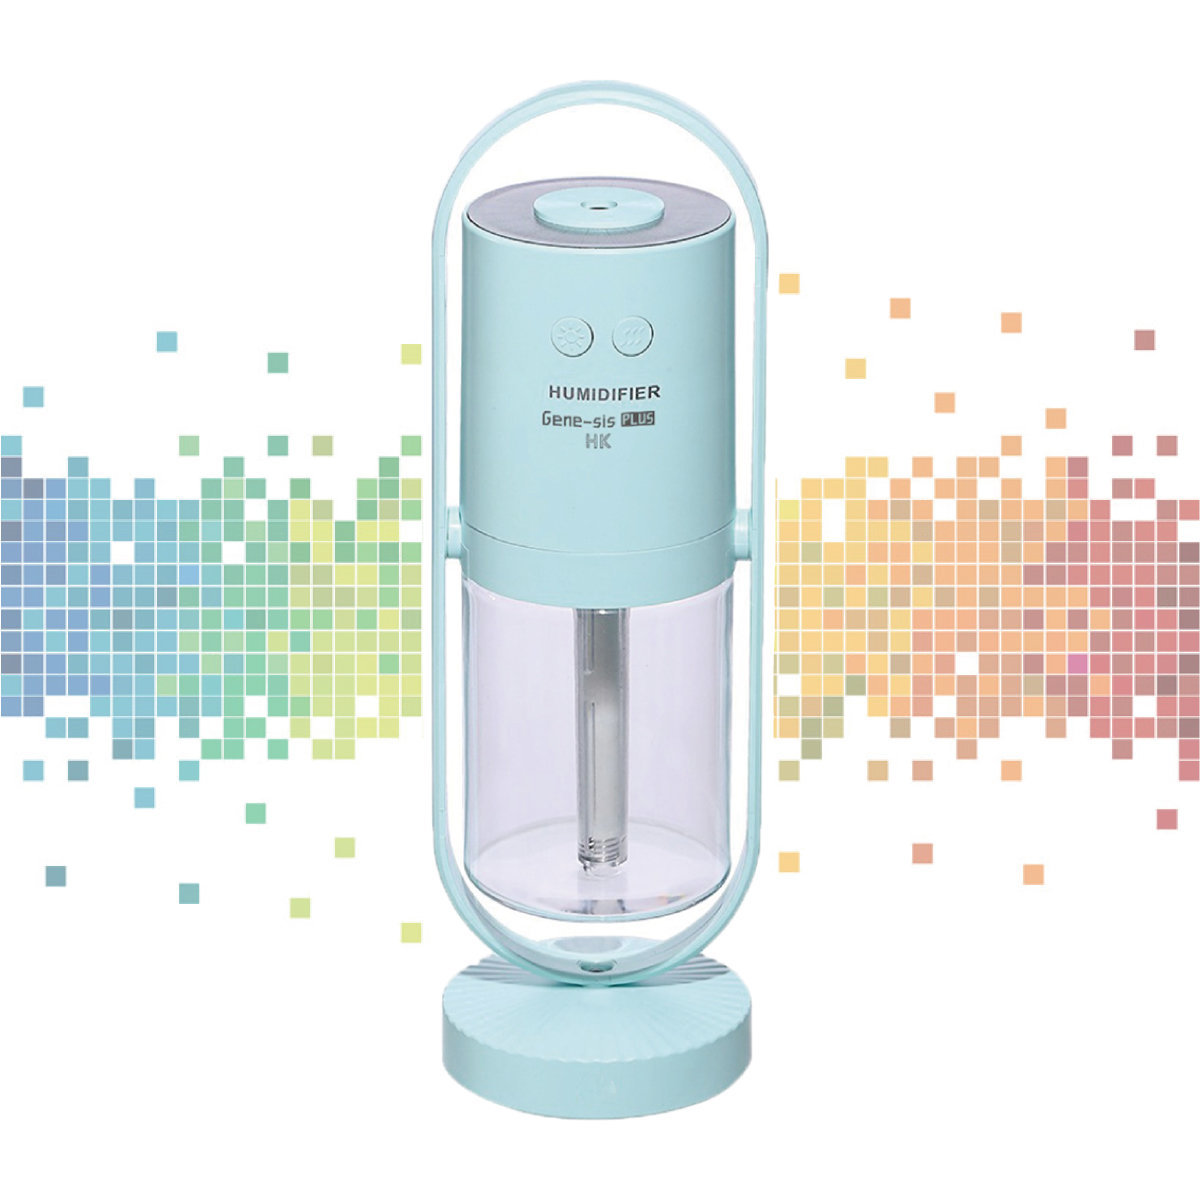 Gene-sis PLUS 2 Gen Wireless Humidifier - Light Blue